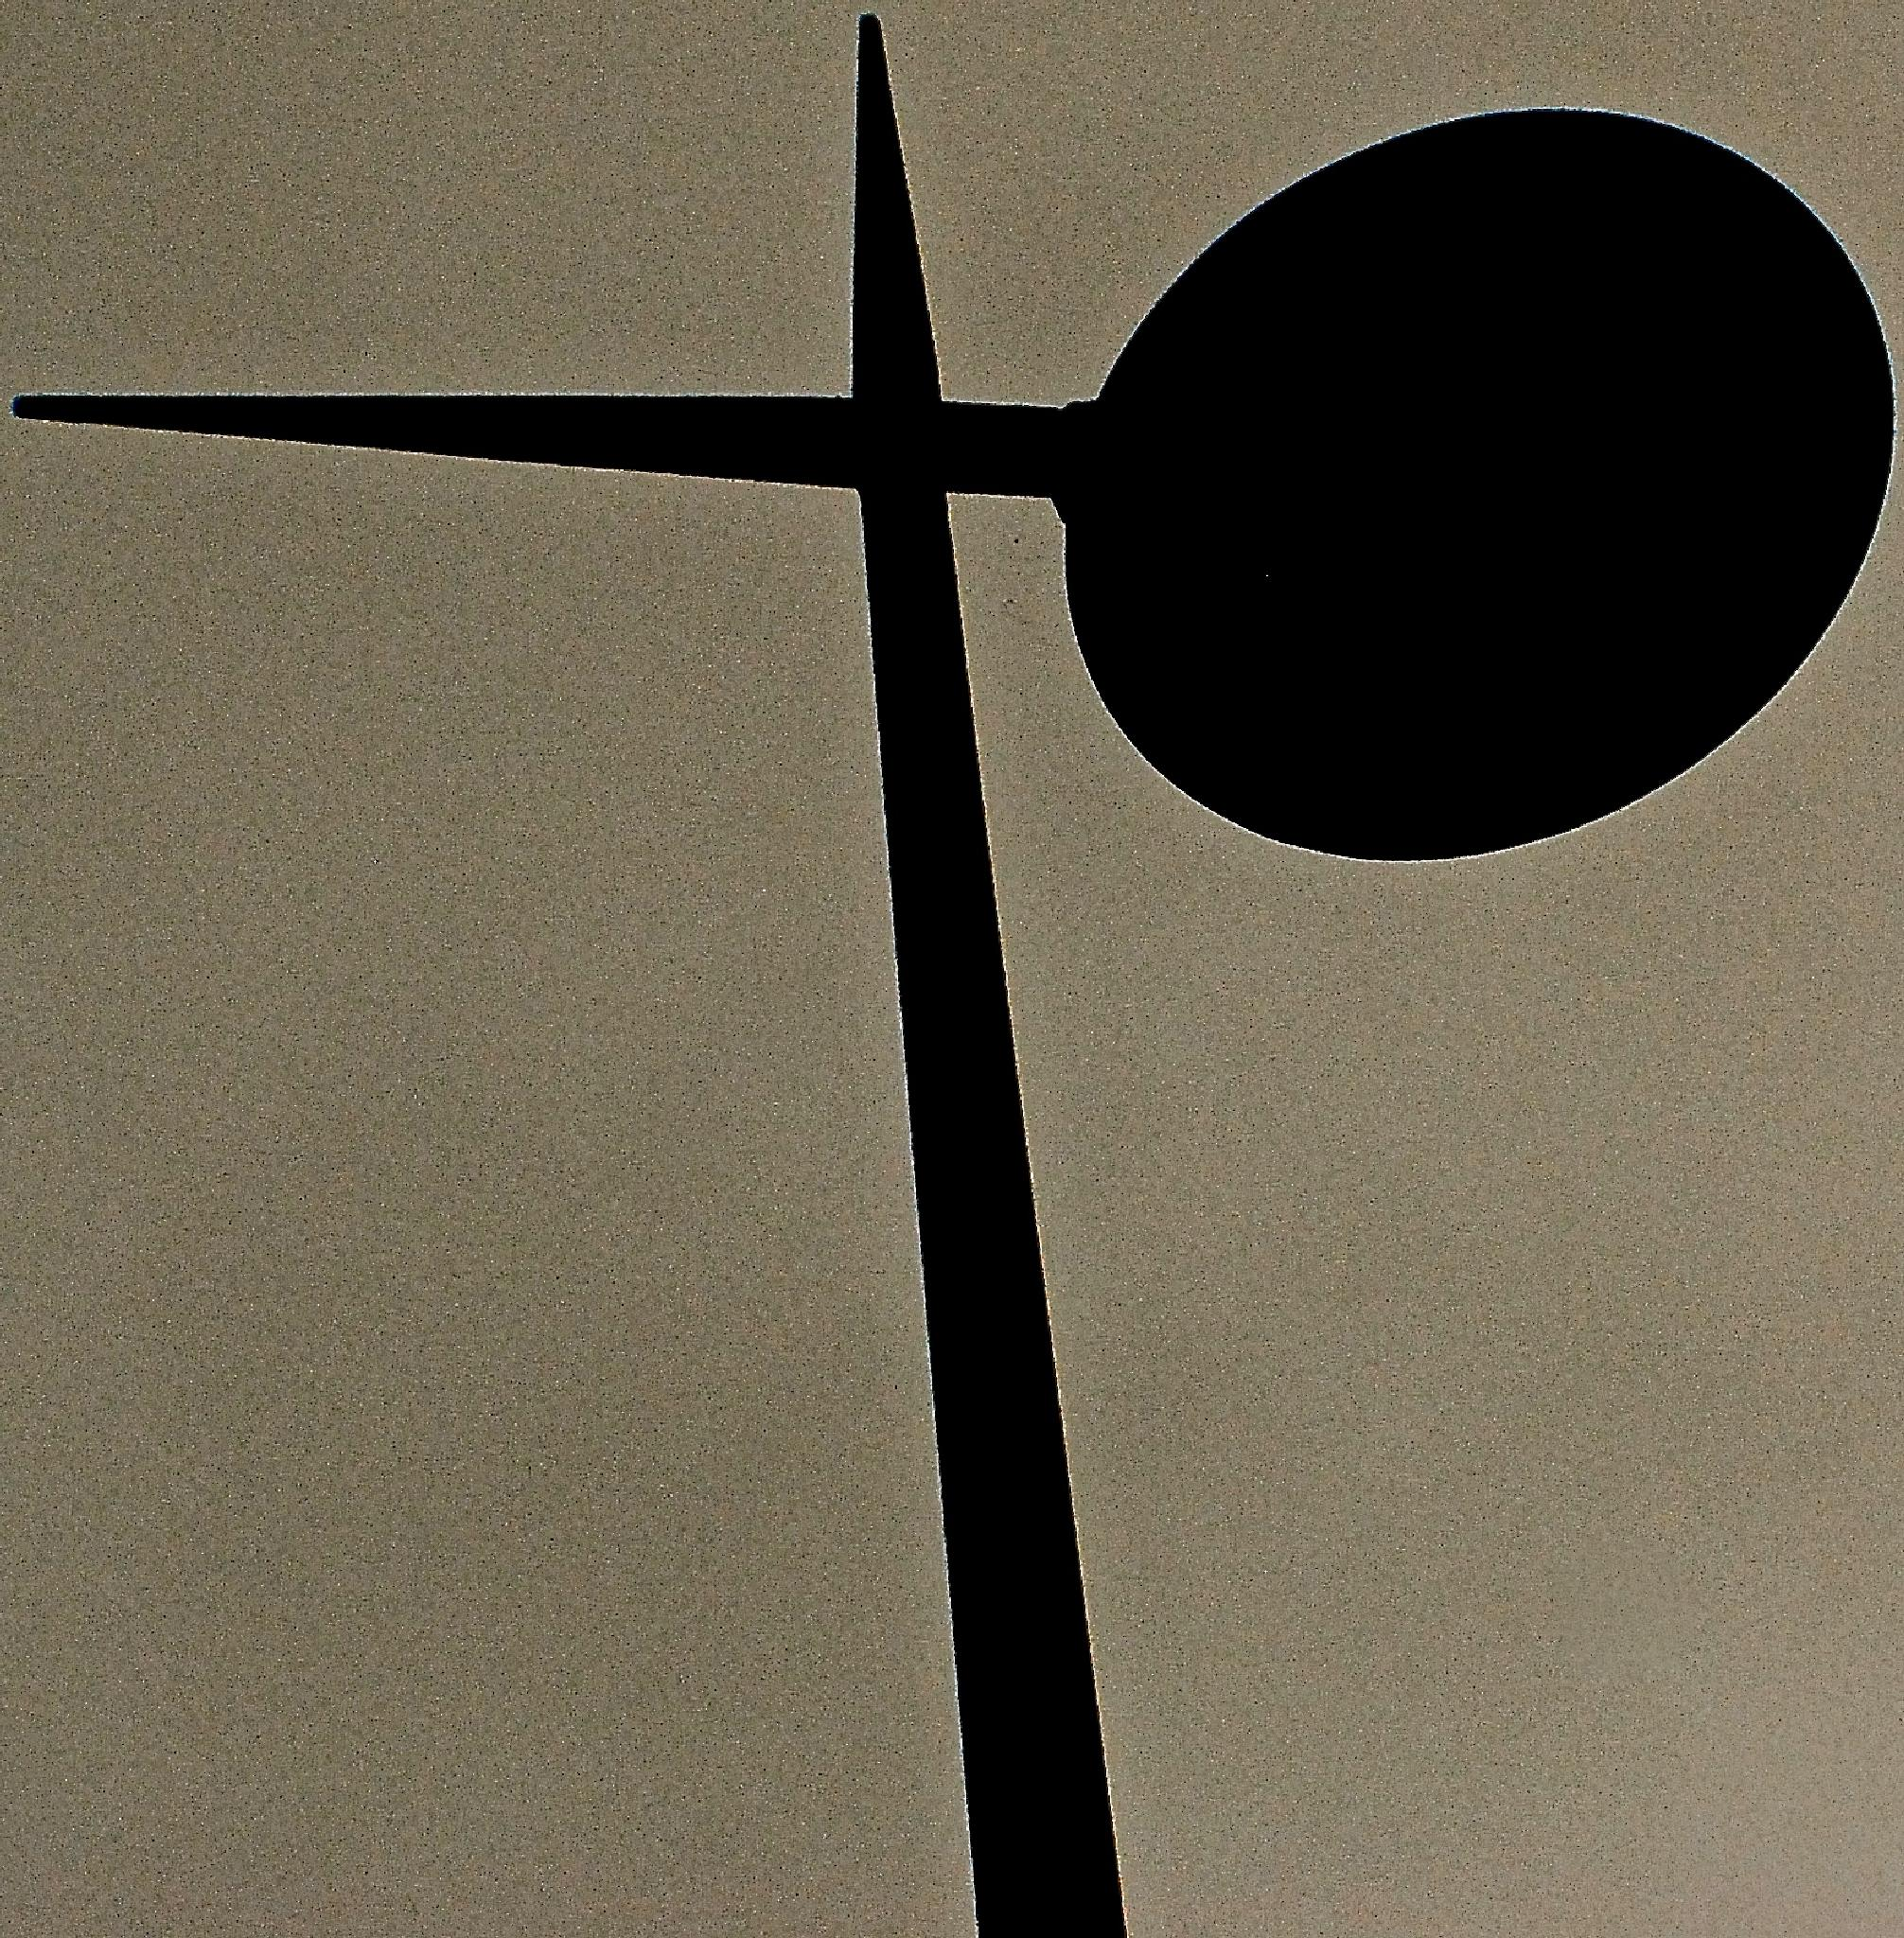 STReeTLiGHT by aLDouS aNGSTeiN